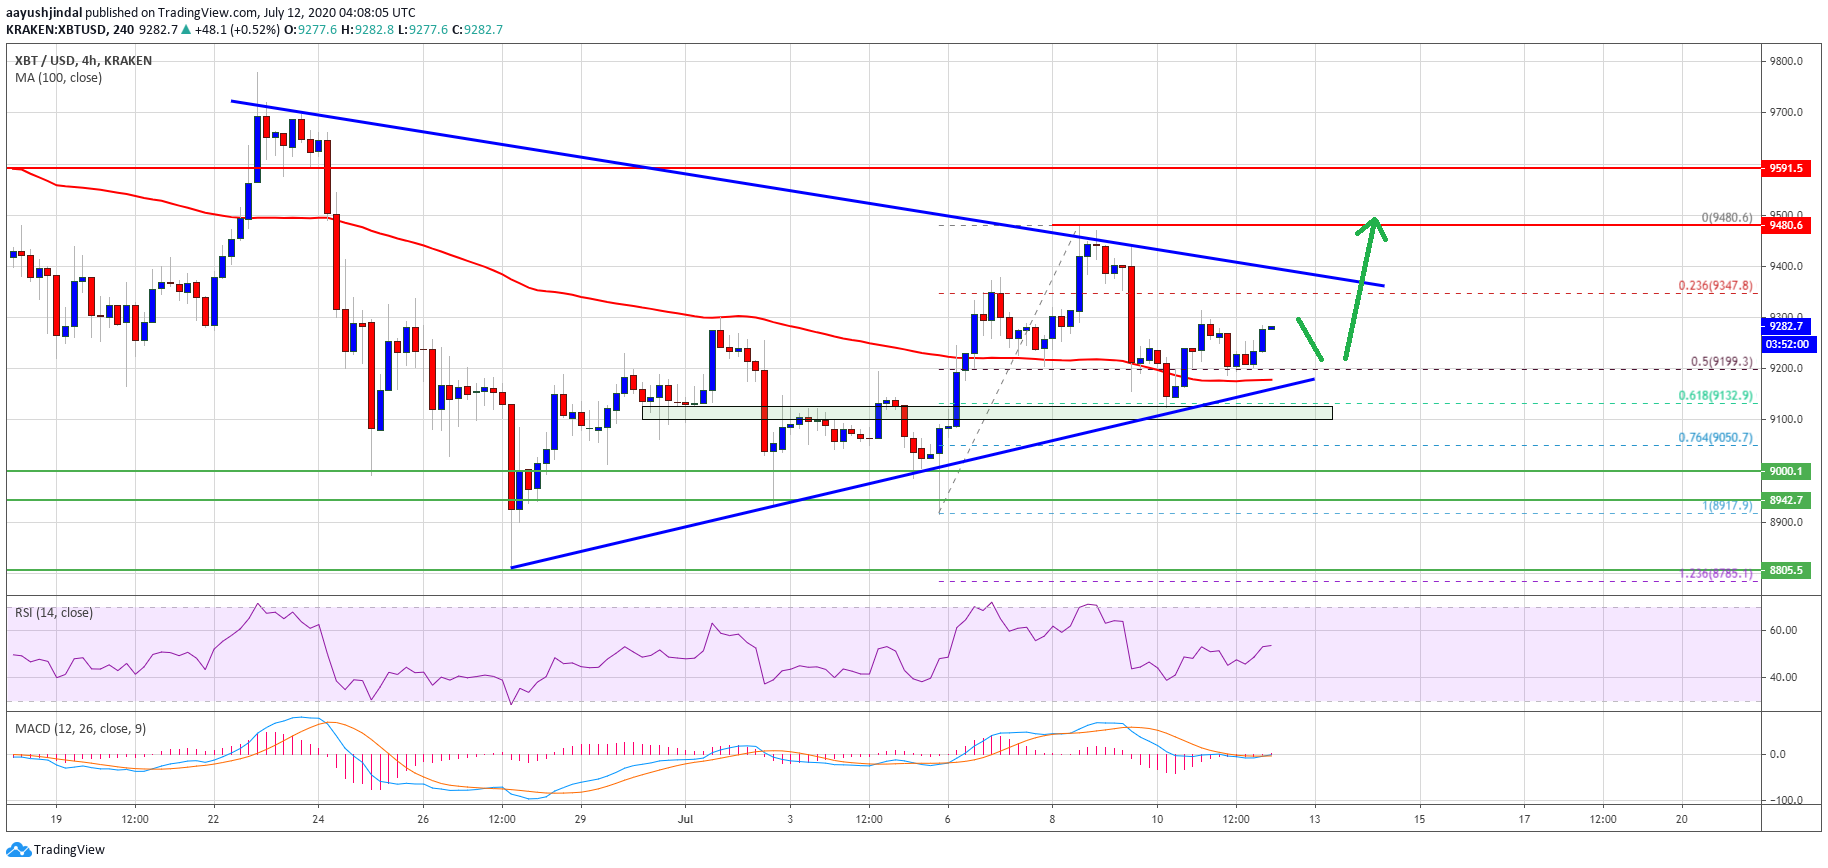 Bitcoin Trading Near Make-or-Break Levels: Here's Why $9,400 Holds The Key